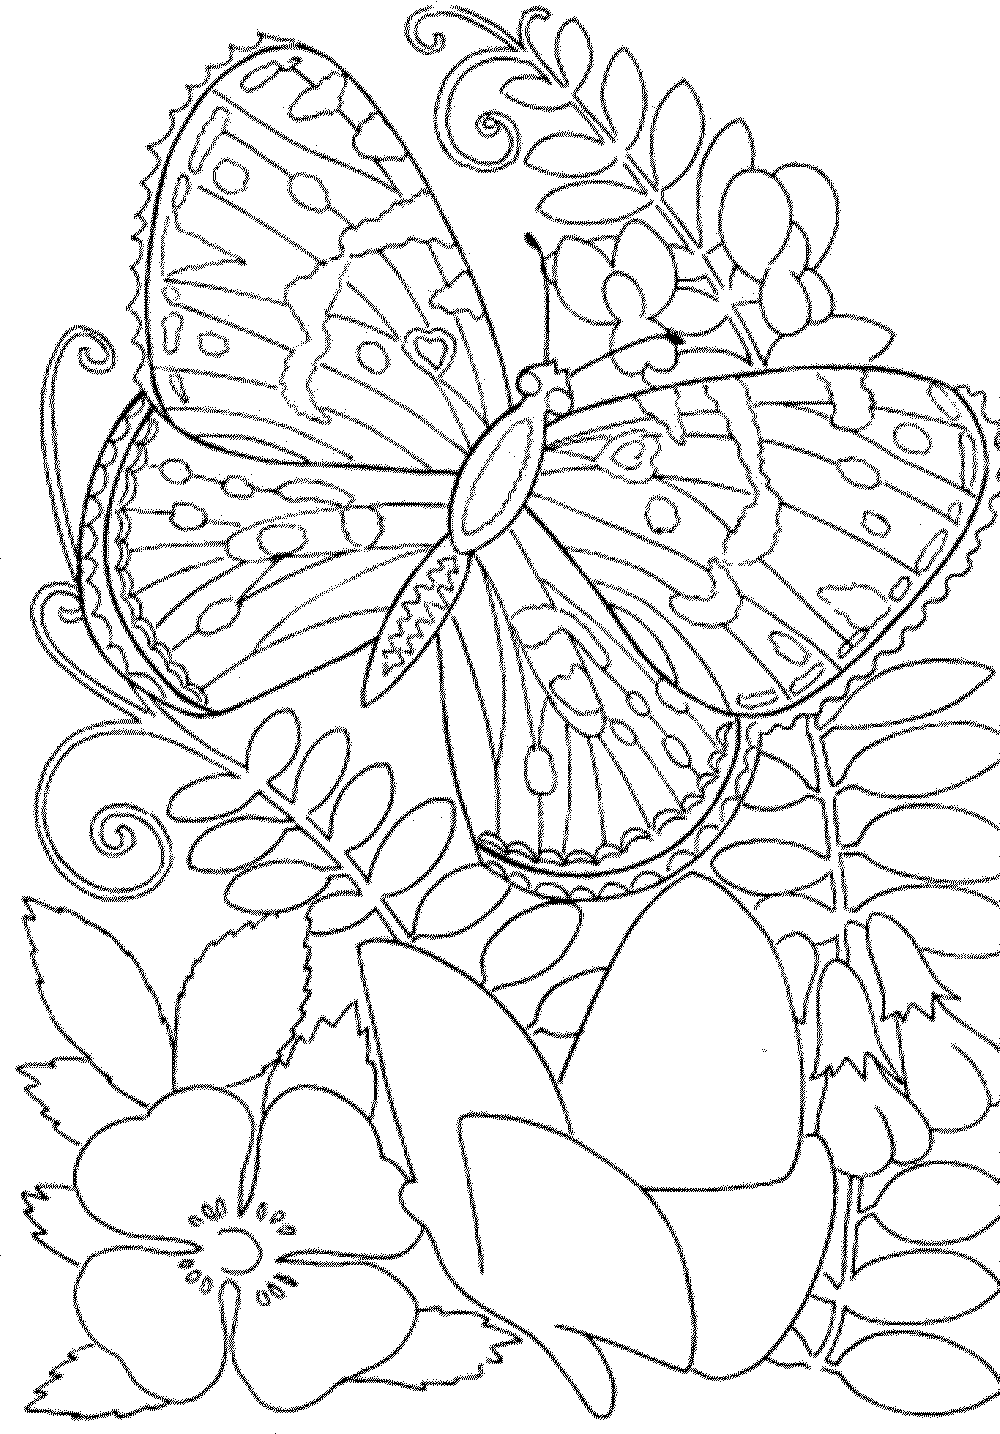 Free Owl Adult Coloring Pages To Print - Coloring Home | free fun coloring pages for adults